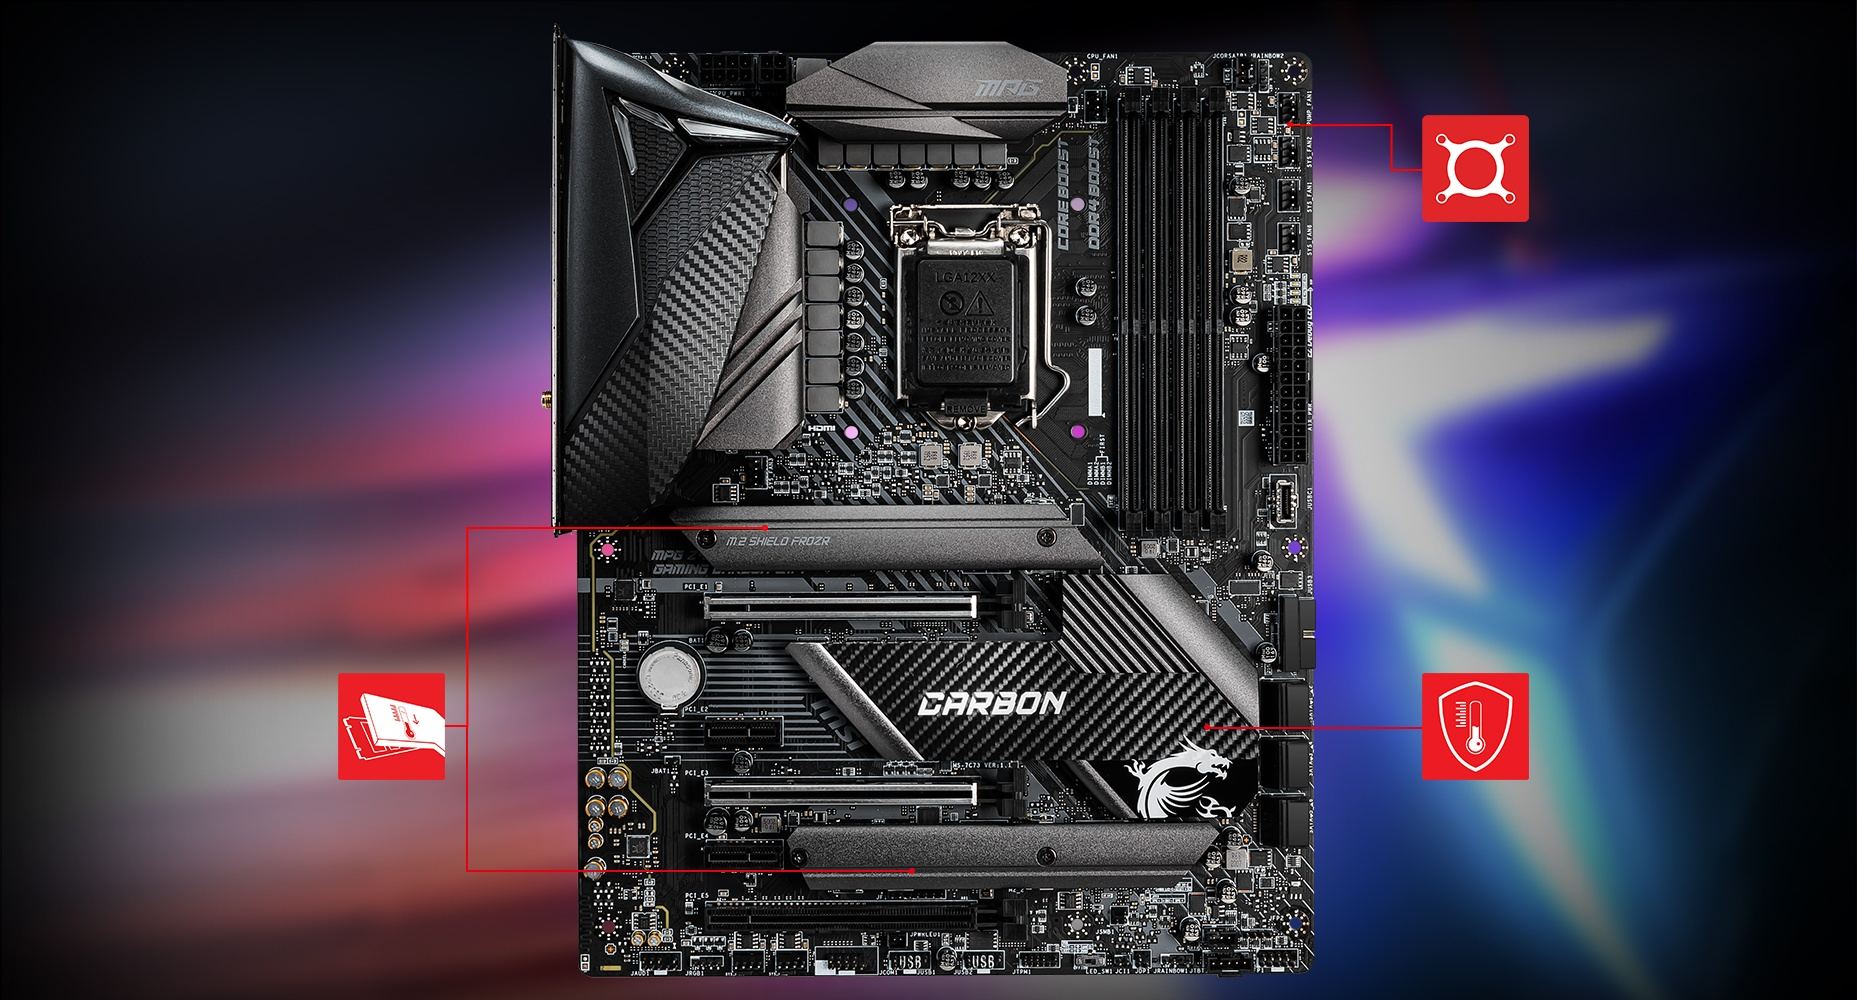 MPG Z490 GAMING CARBON WIFI motherboard